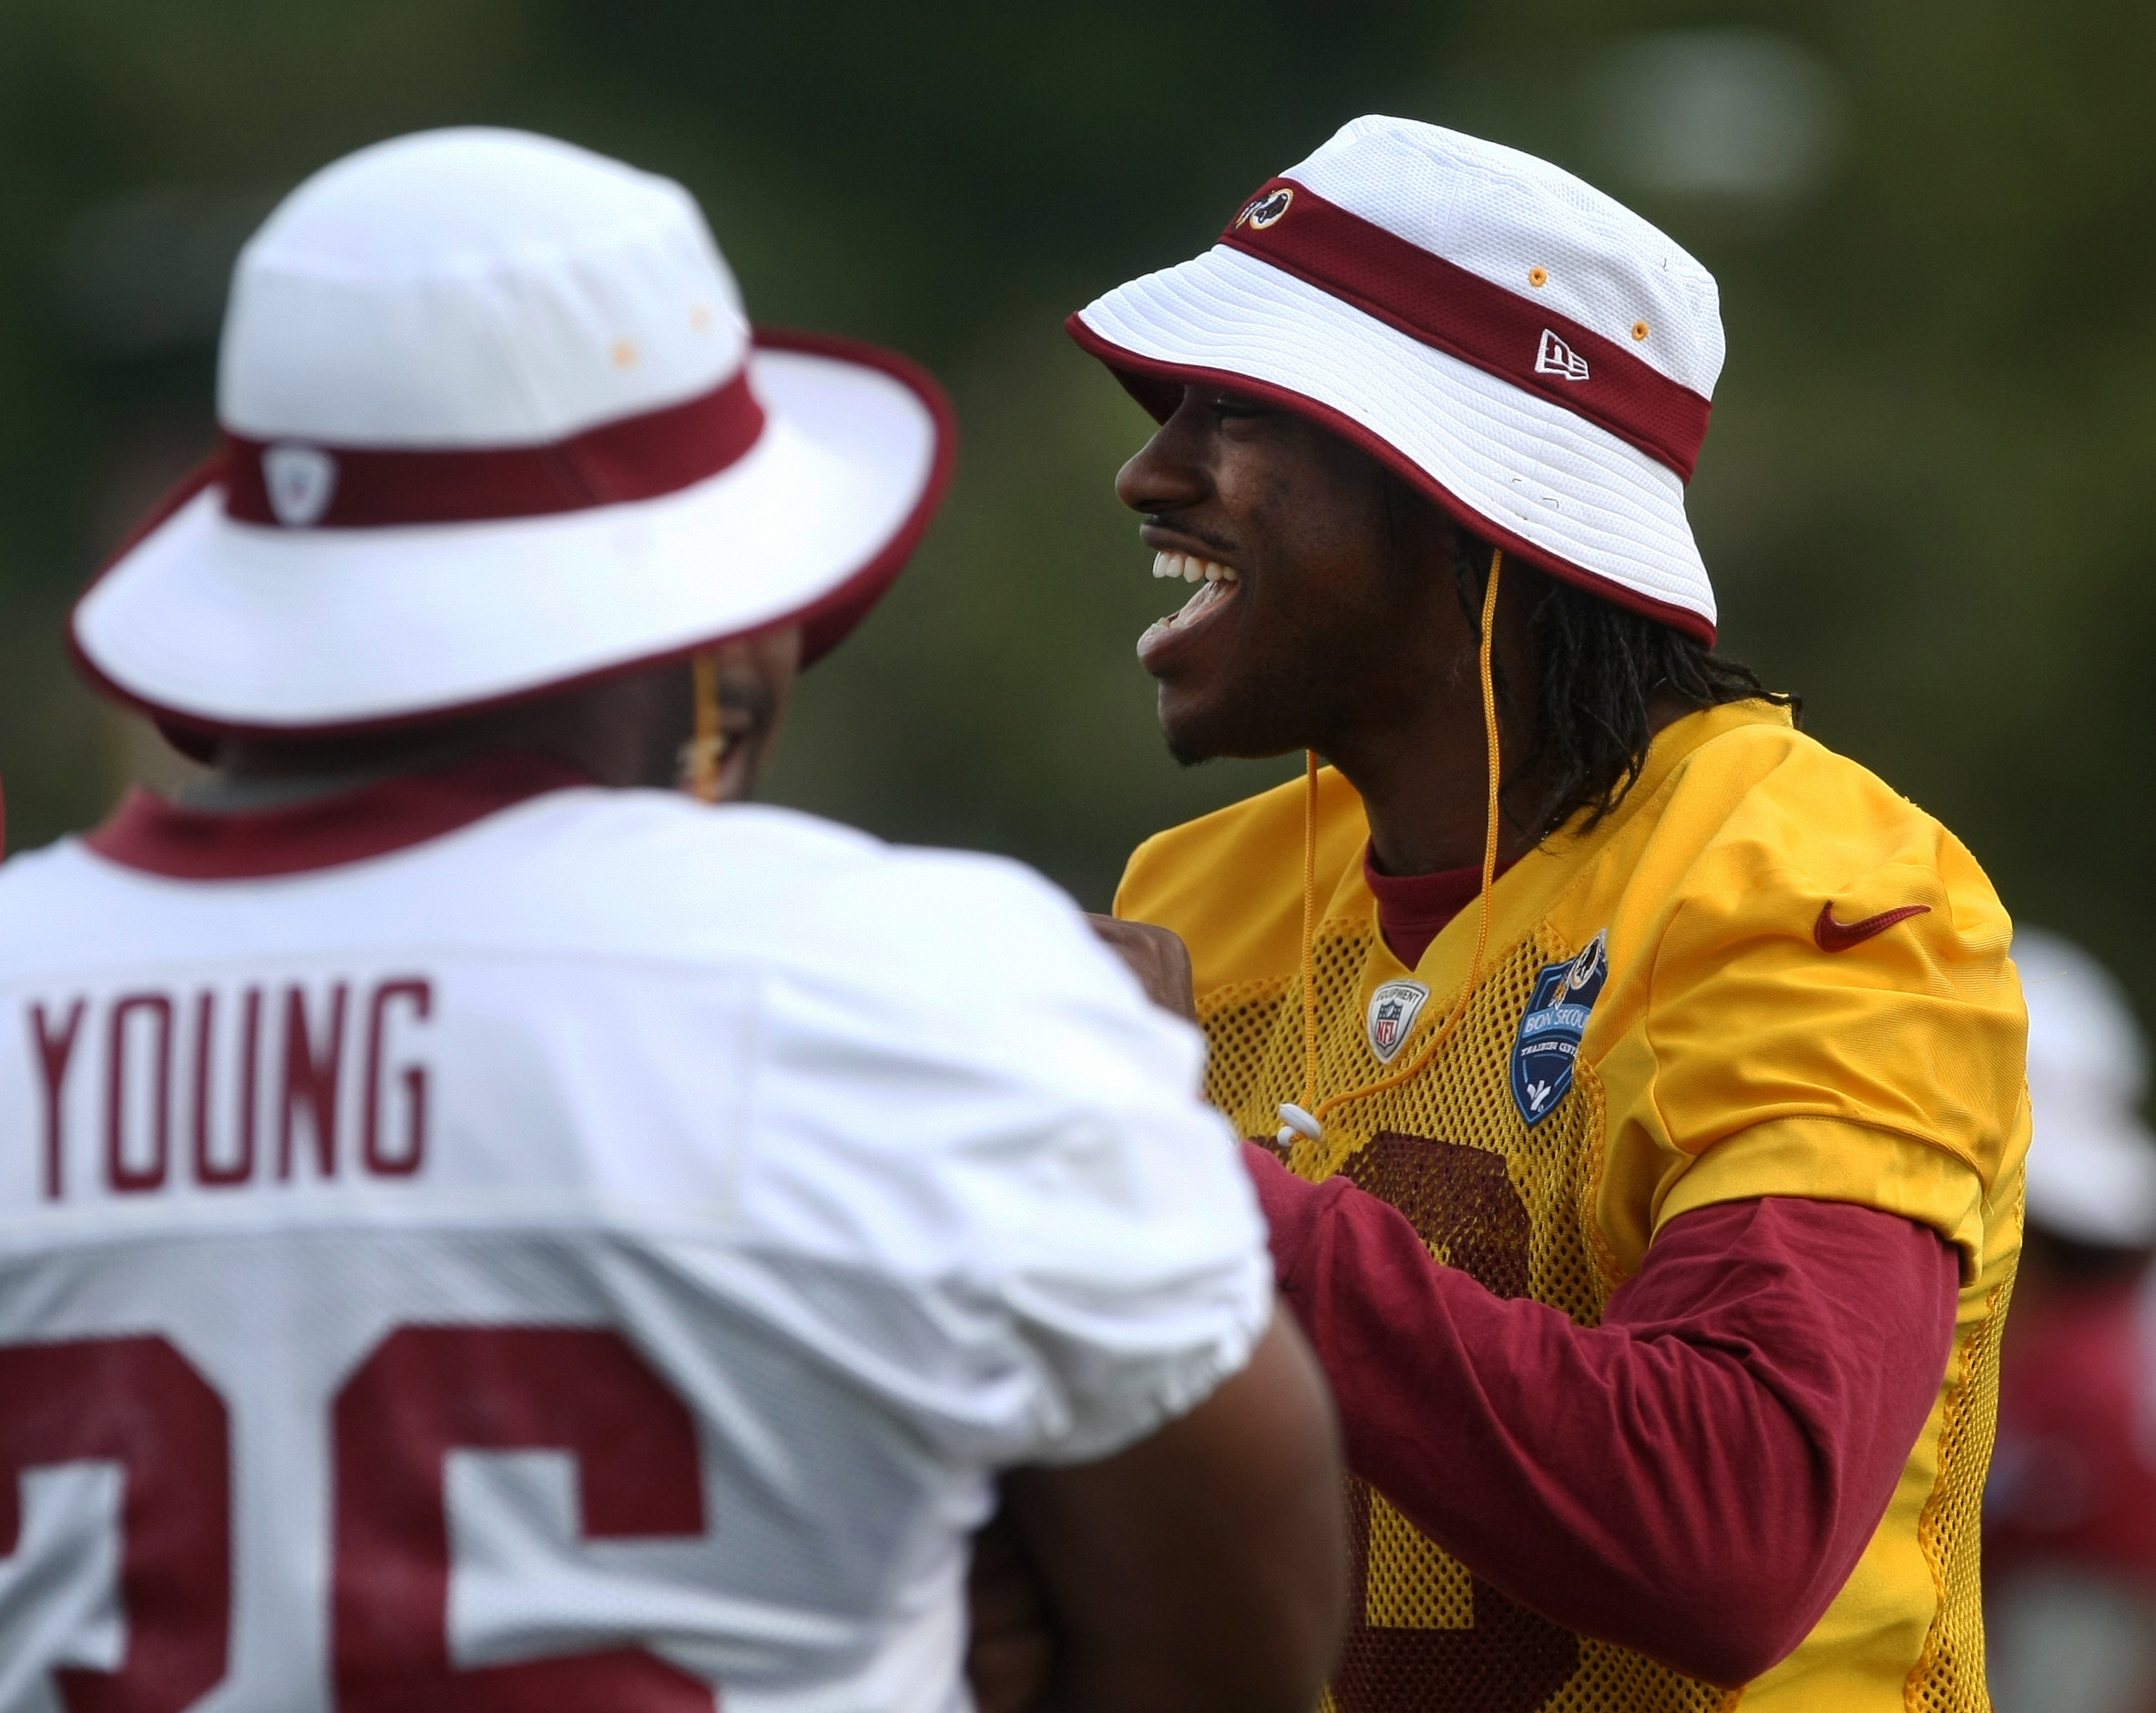 Washington Redskins quarterback Robert Griffin III, right, laughs with Washington Redskins fullback Darrel Young during the team's NFL football training camp in Richmond, Va., Monday, Aug. 3, 2015.   (AP Photo/Jason Hirschfeld)